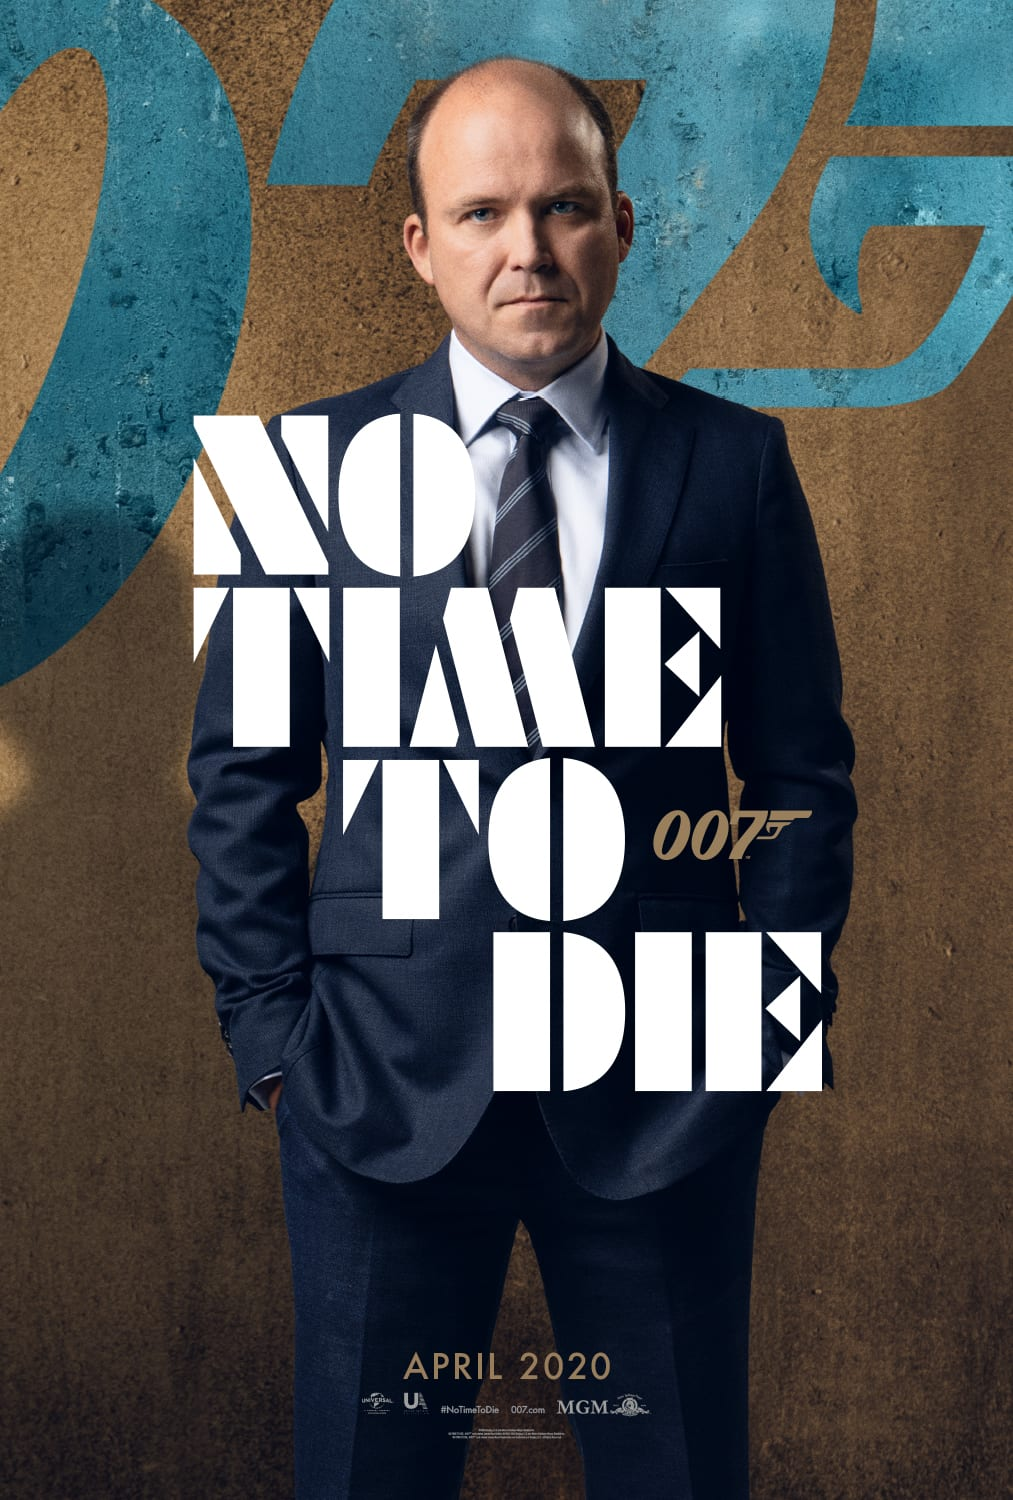 007 No Time To Die Bond 25 Character Posters Rory Kinnear as Bill Tanner